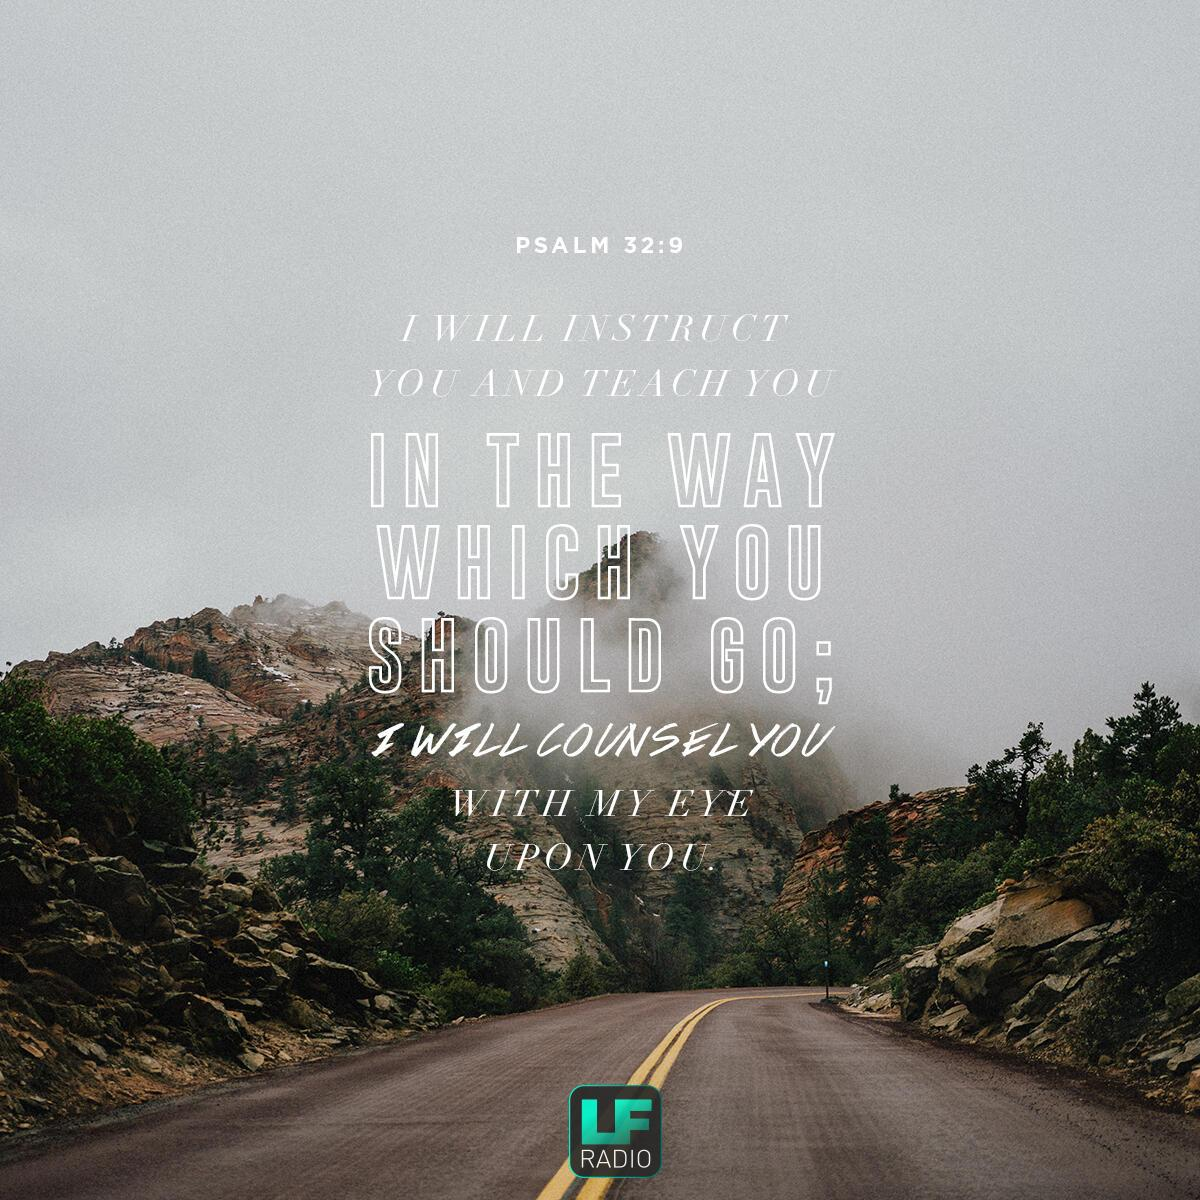 Psalm 32:9 - Verse of the Day